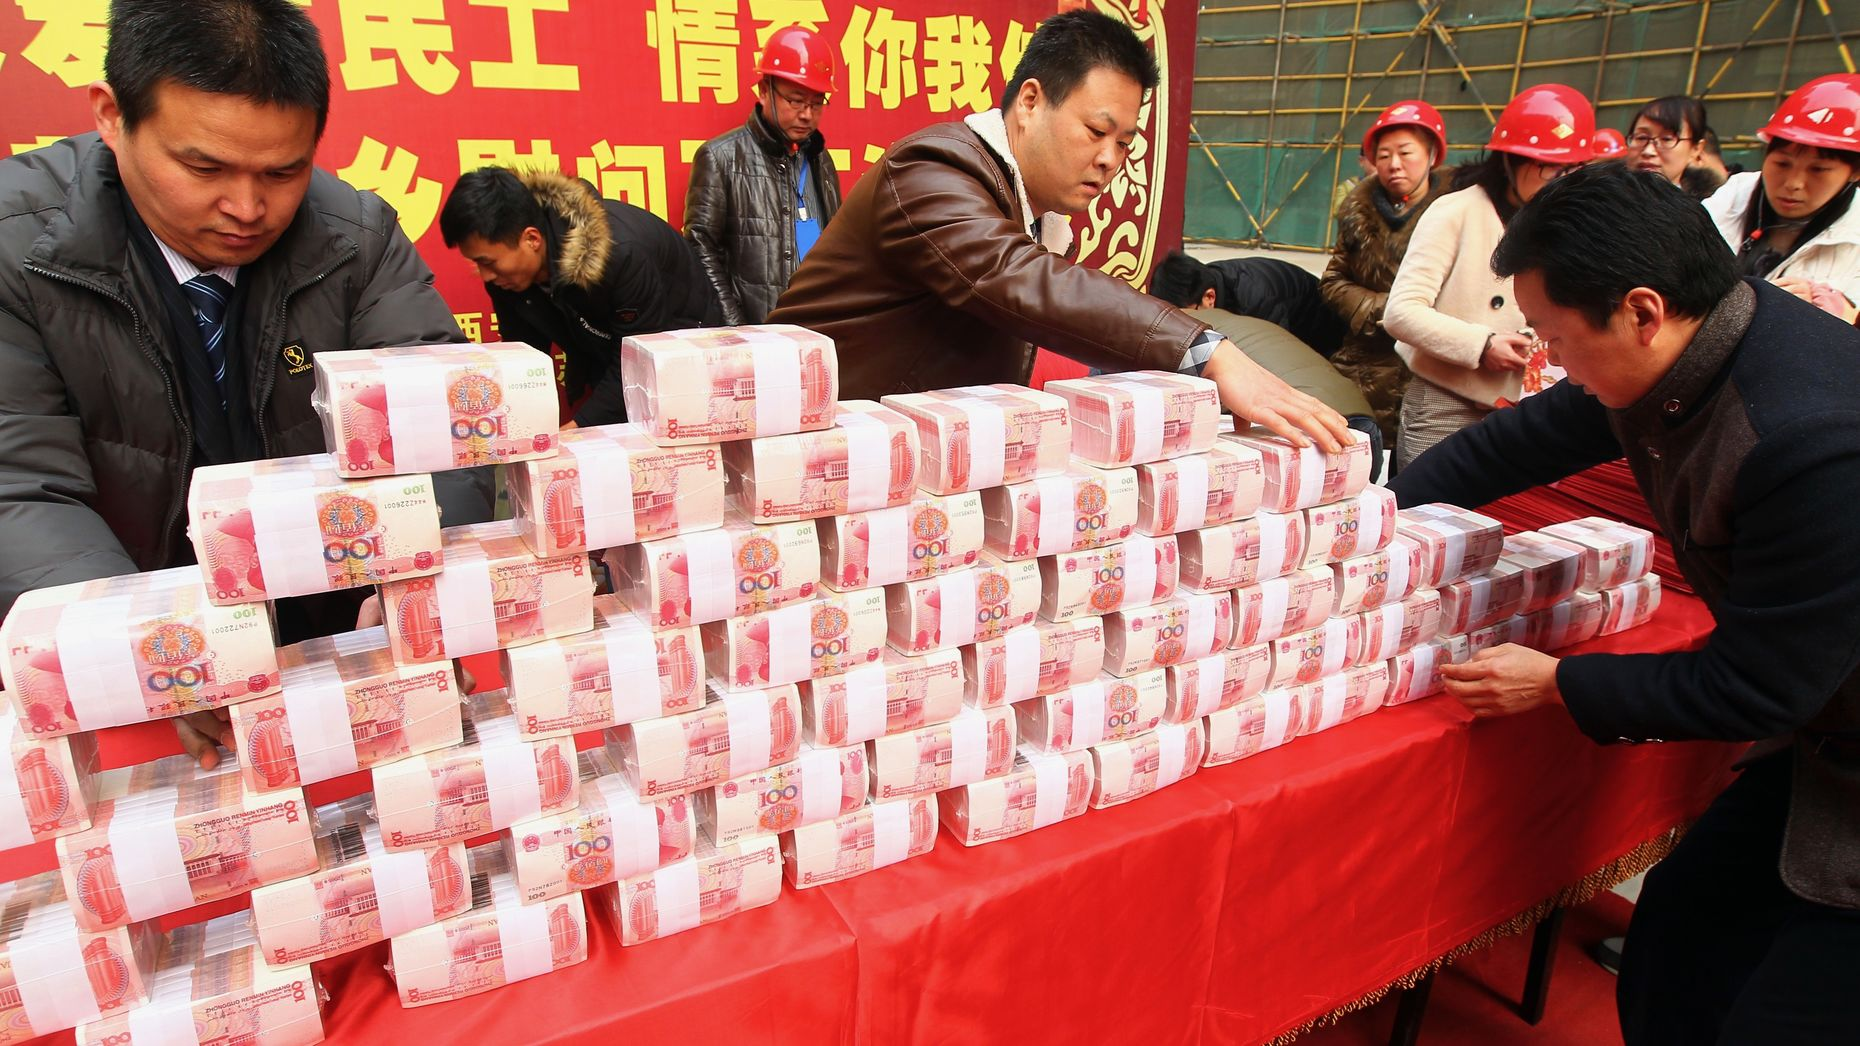 Stacks of Chinese RMB currency to be handed out to workers at a real estate project in China last month. Photo by AP.